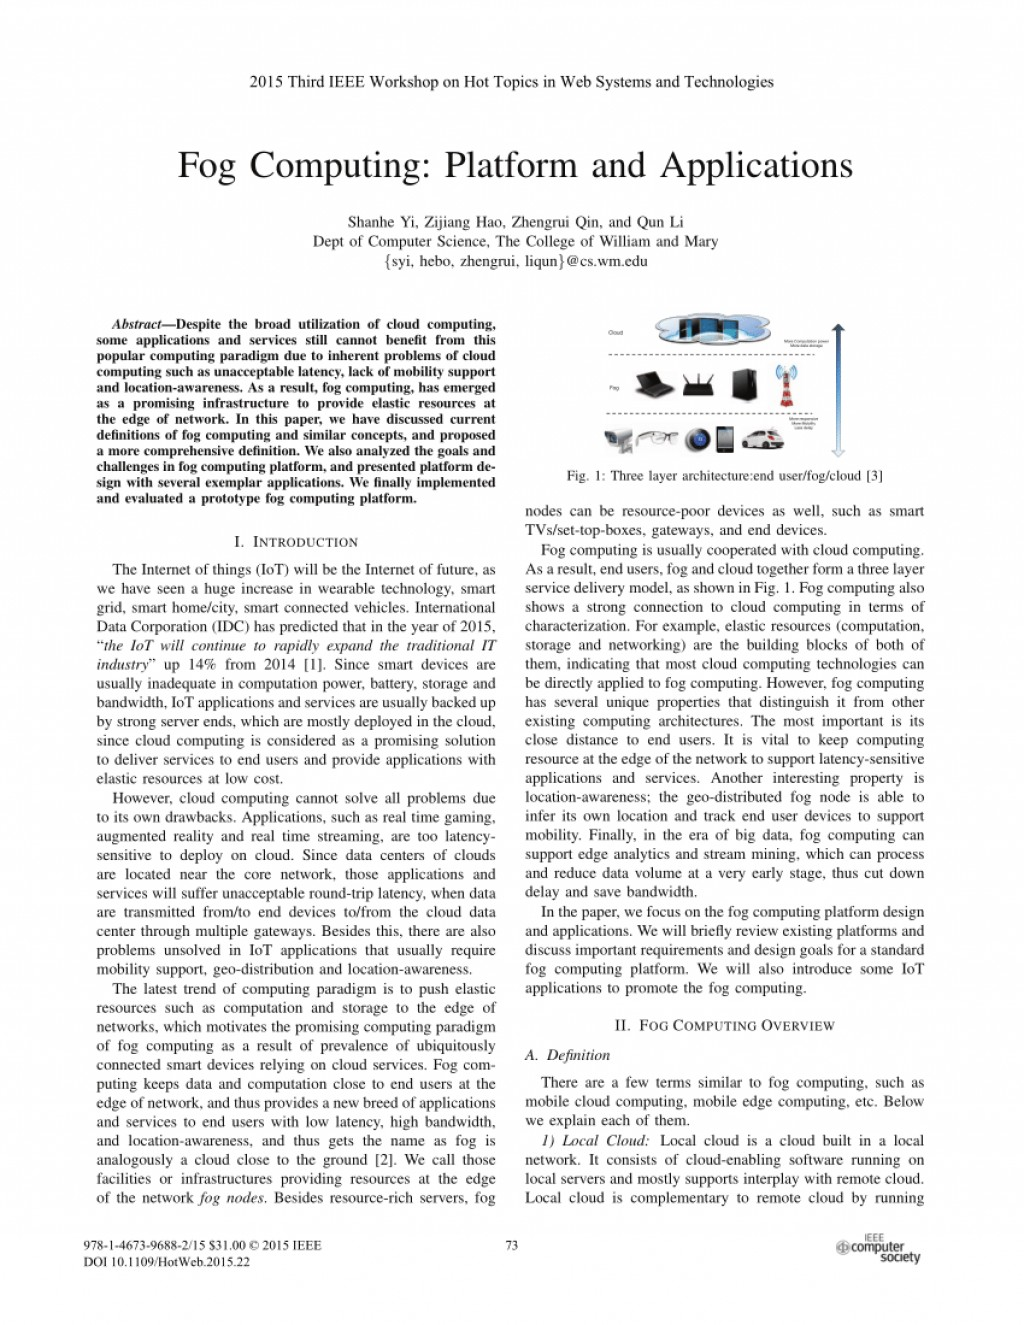 001 Ieee Researchs In Computer Science Pdf Largepreview Phenomenal Research Papers Large